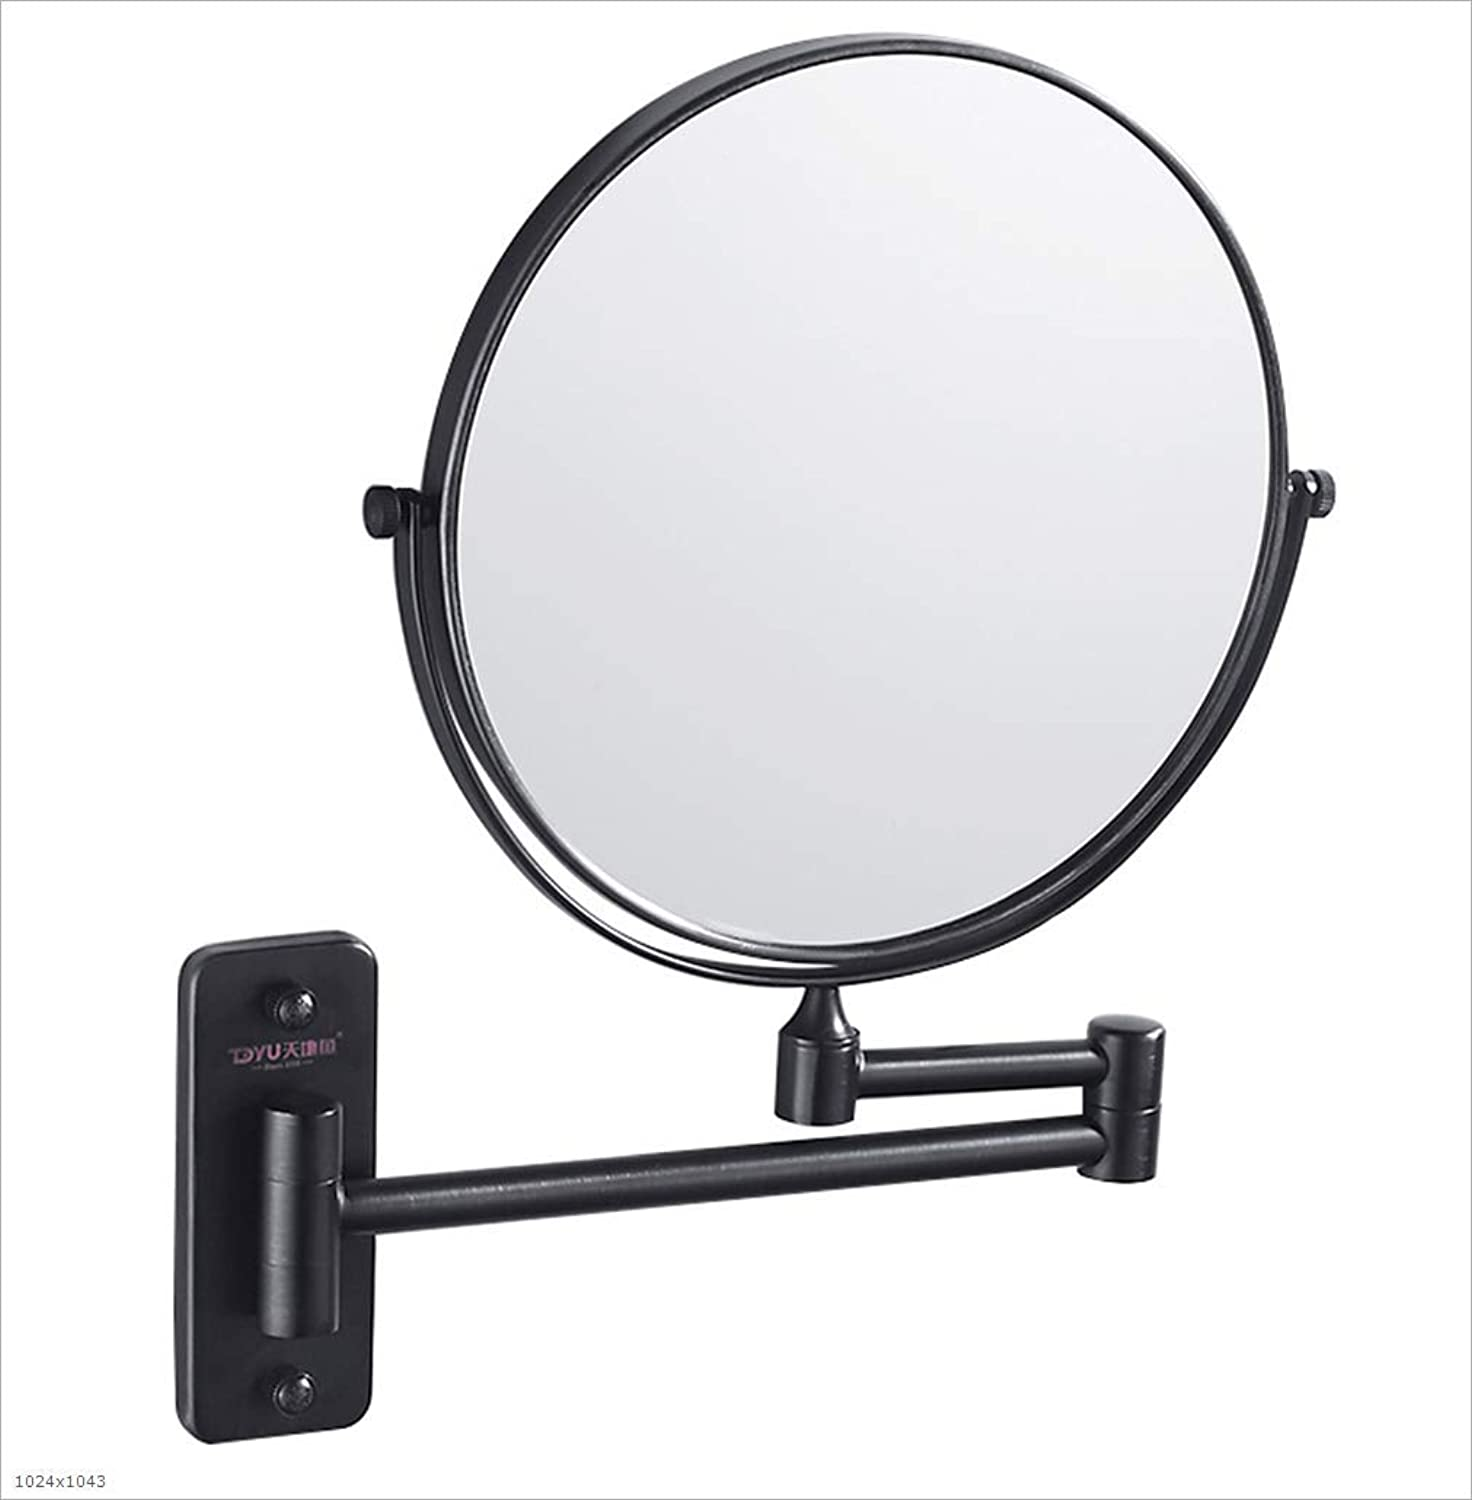 Bathroom Mirror Foldable, Retractable Vanity Mirror, Double-Sided redating Magnifier, Black